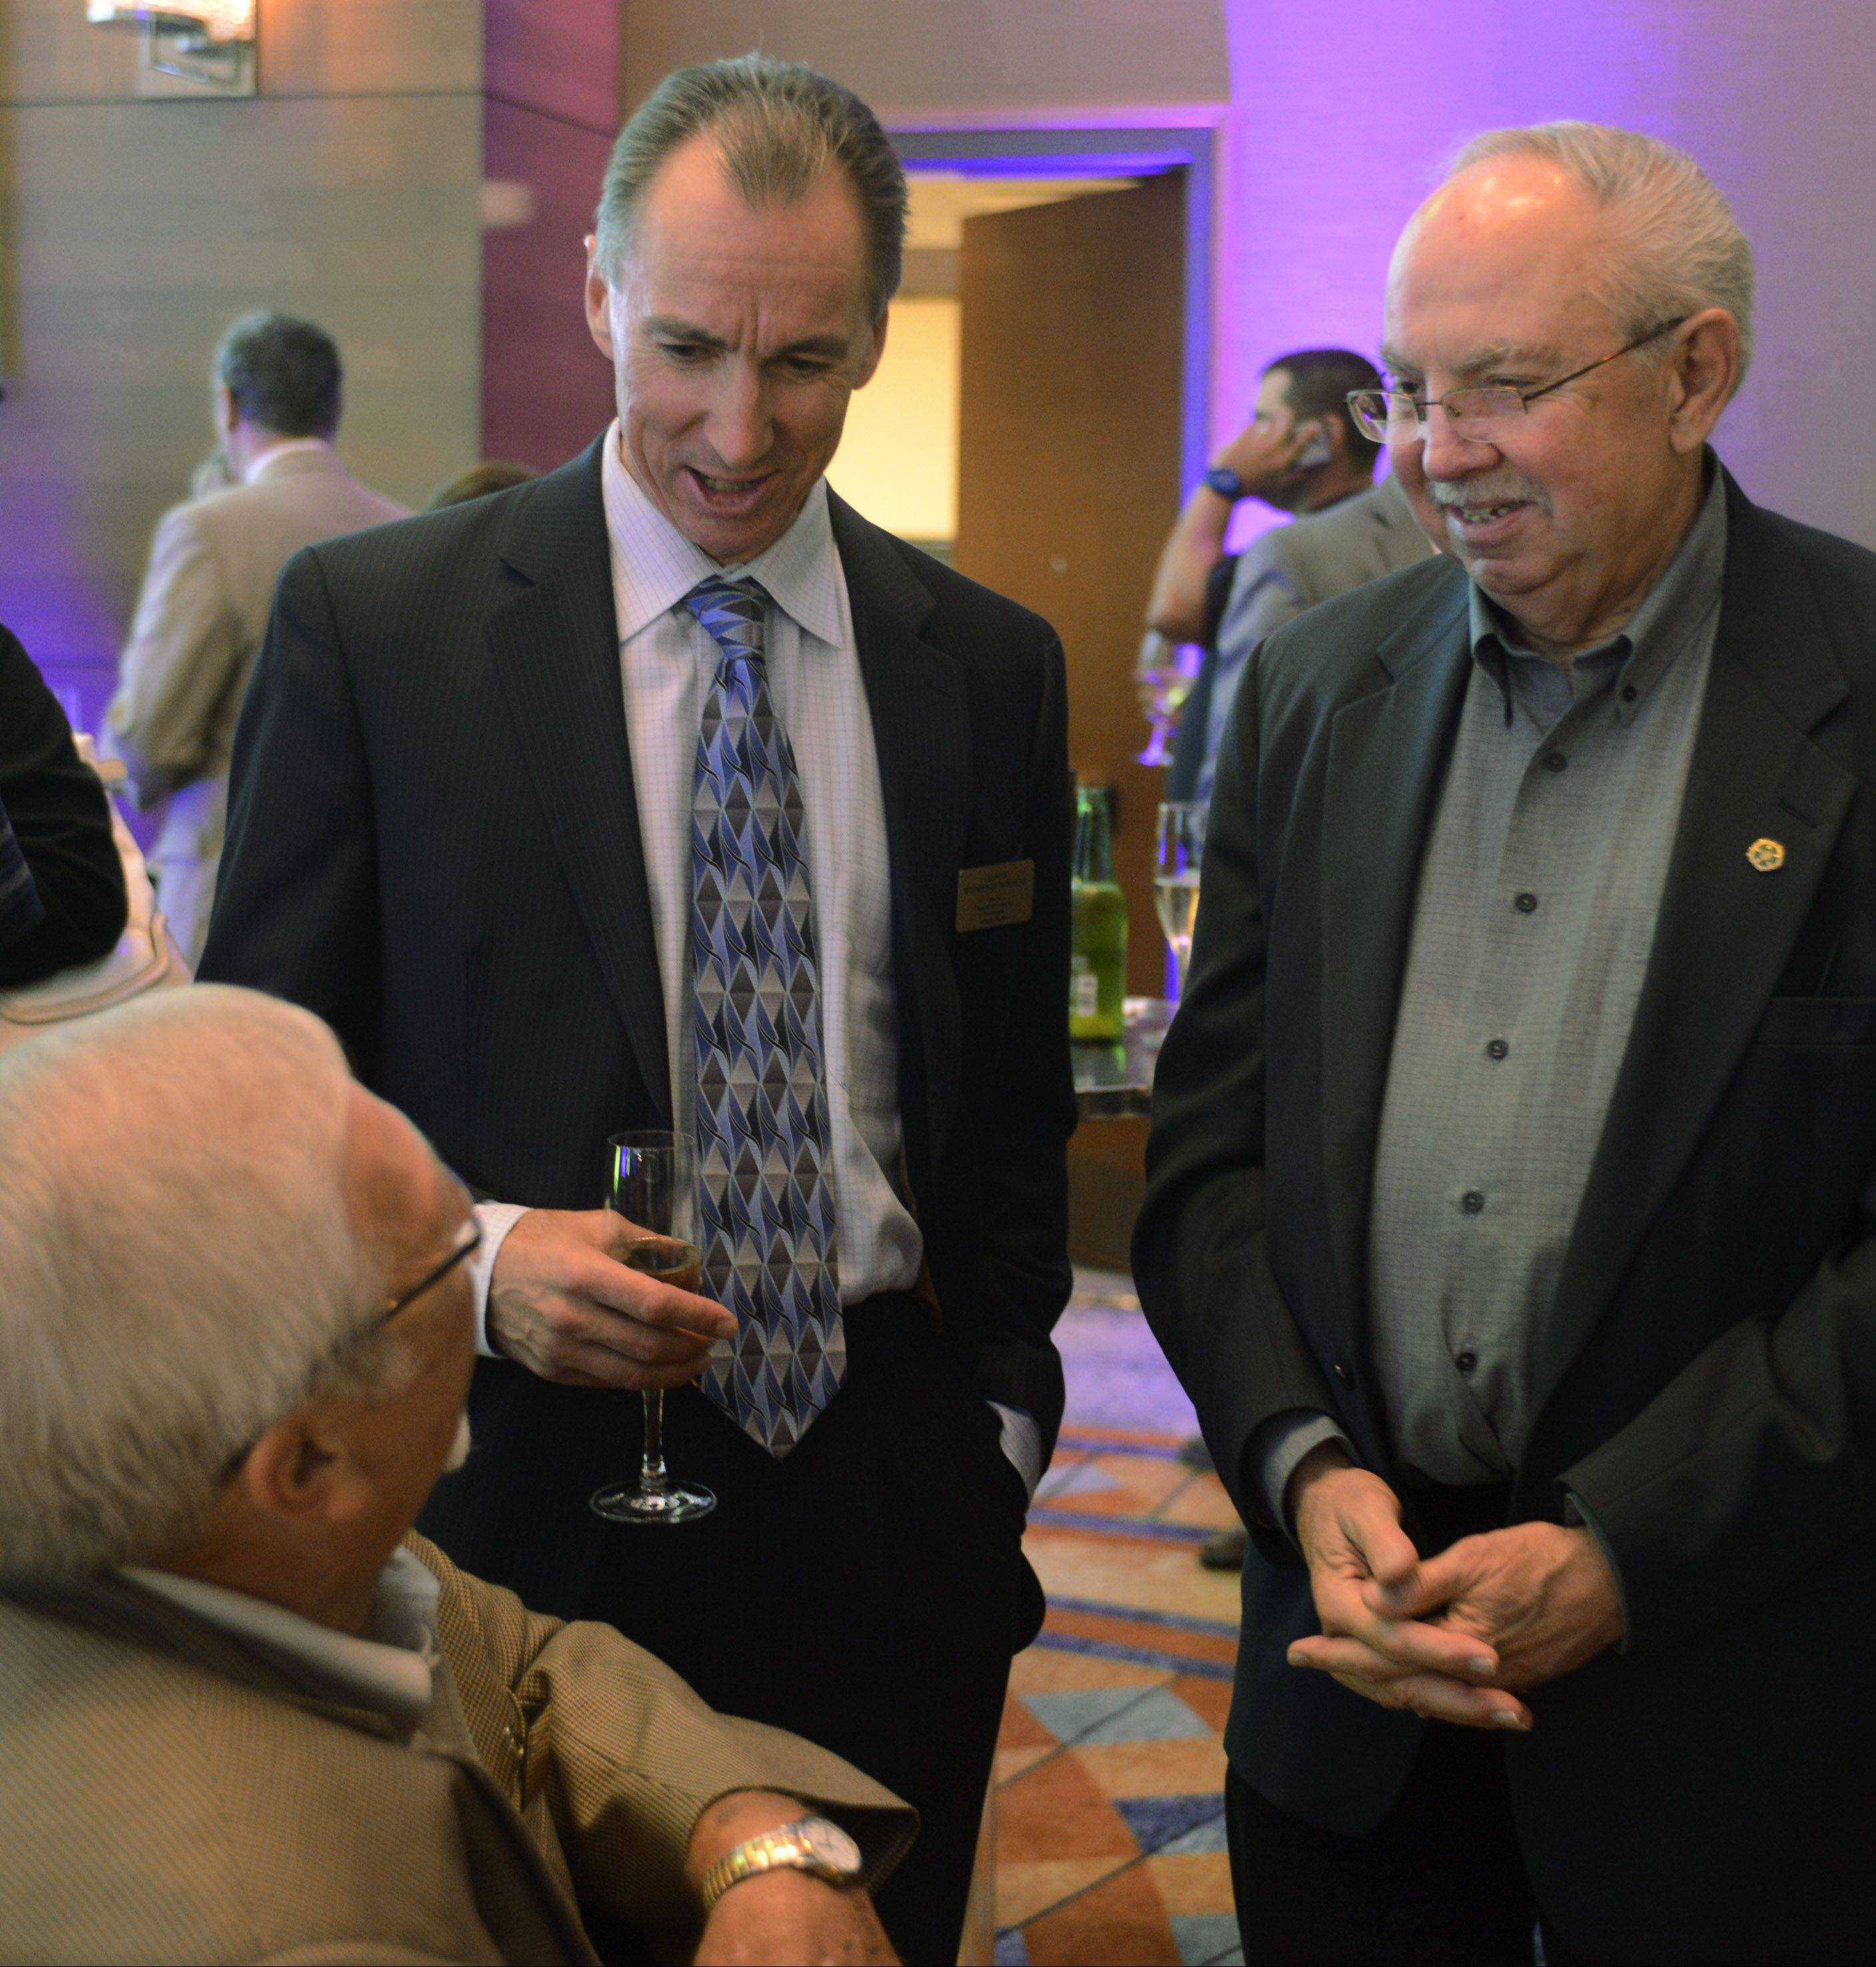 Charles Witherington-Perkins, Arlington Heights' director of planning and community development, standing left, and Schaumburg Mayor Al Larson, right, chat with Schaumburg Trustee Frank Kozak Wednesday at an unveiling of the new Meet Chicago Northwest name and logo.